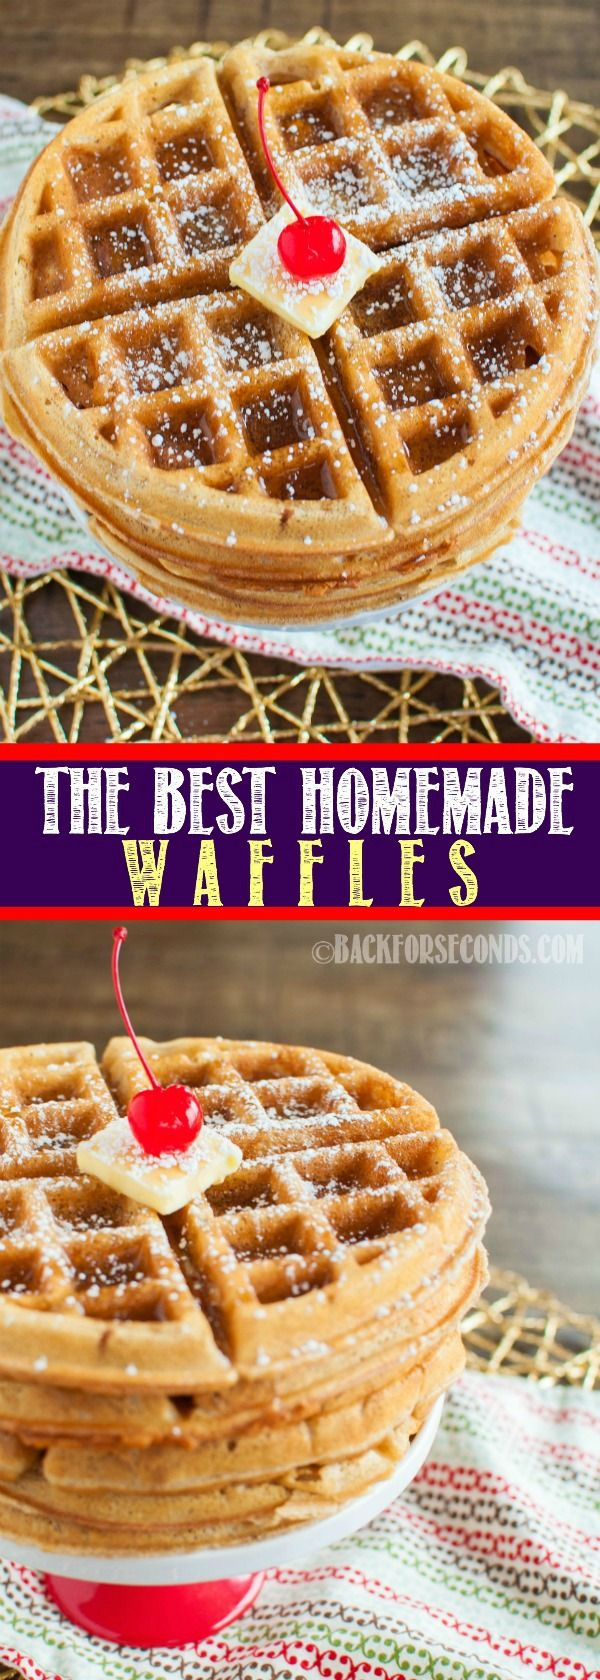 This recipe makes The BEST Homemade Waffles. Seriously! They are crispy on the outside and light and fluffy on the inside, just the way a waffle should be!